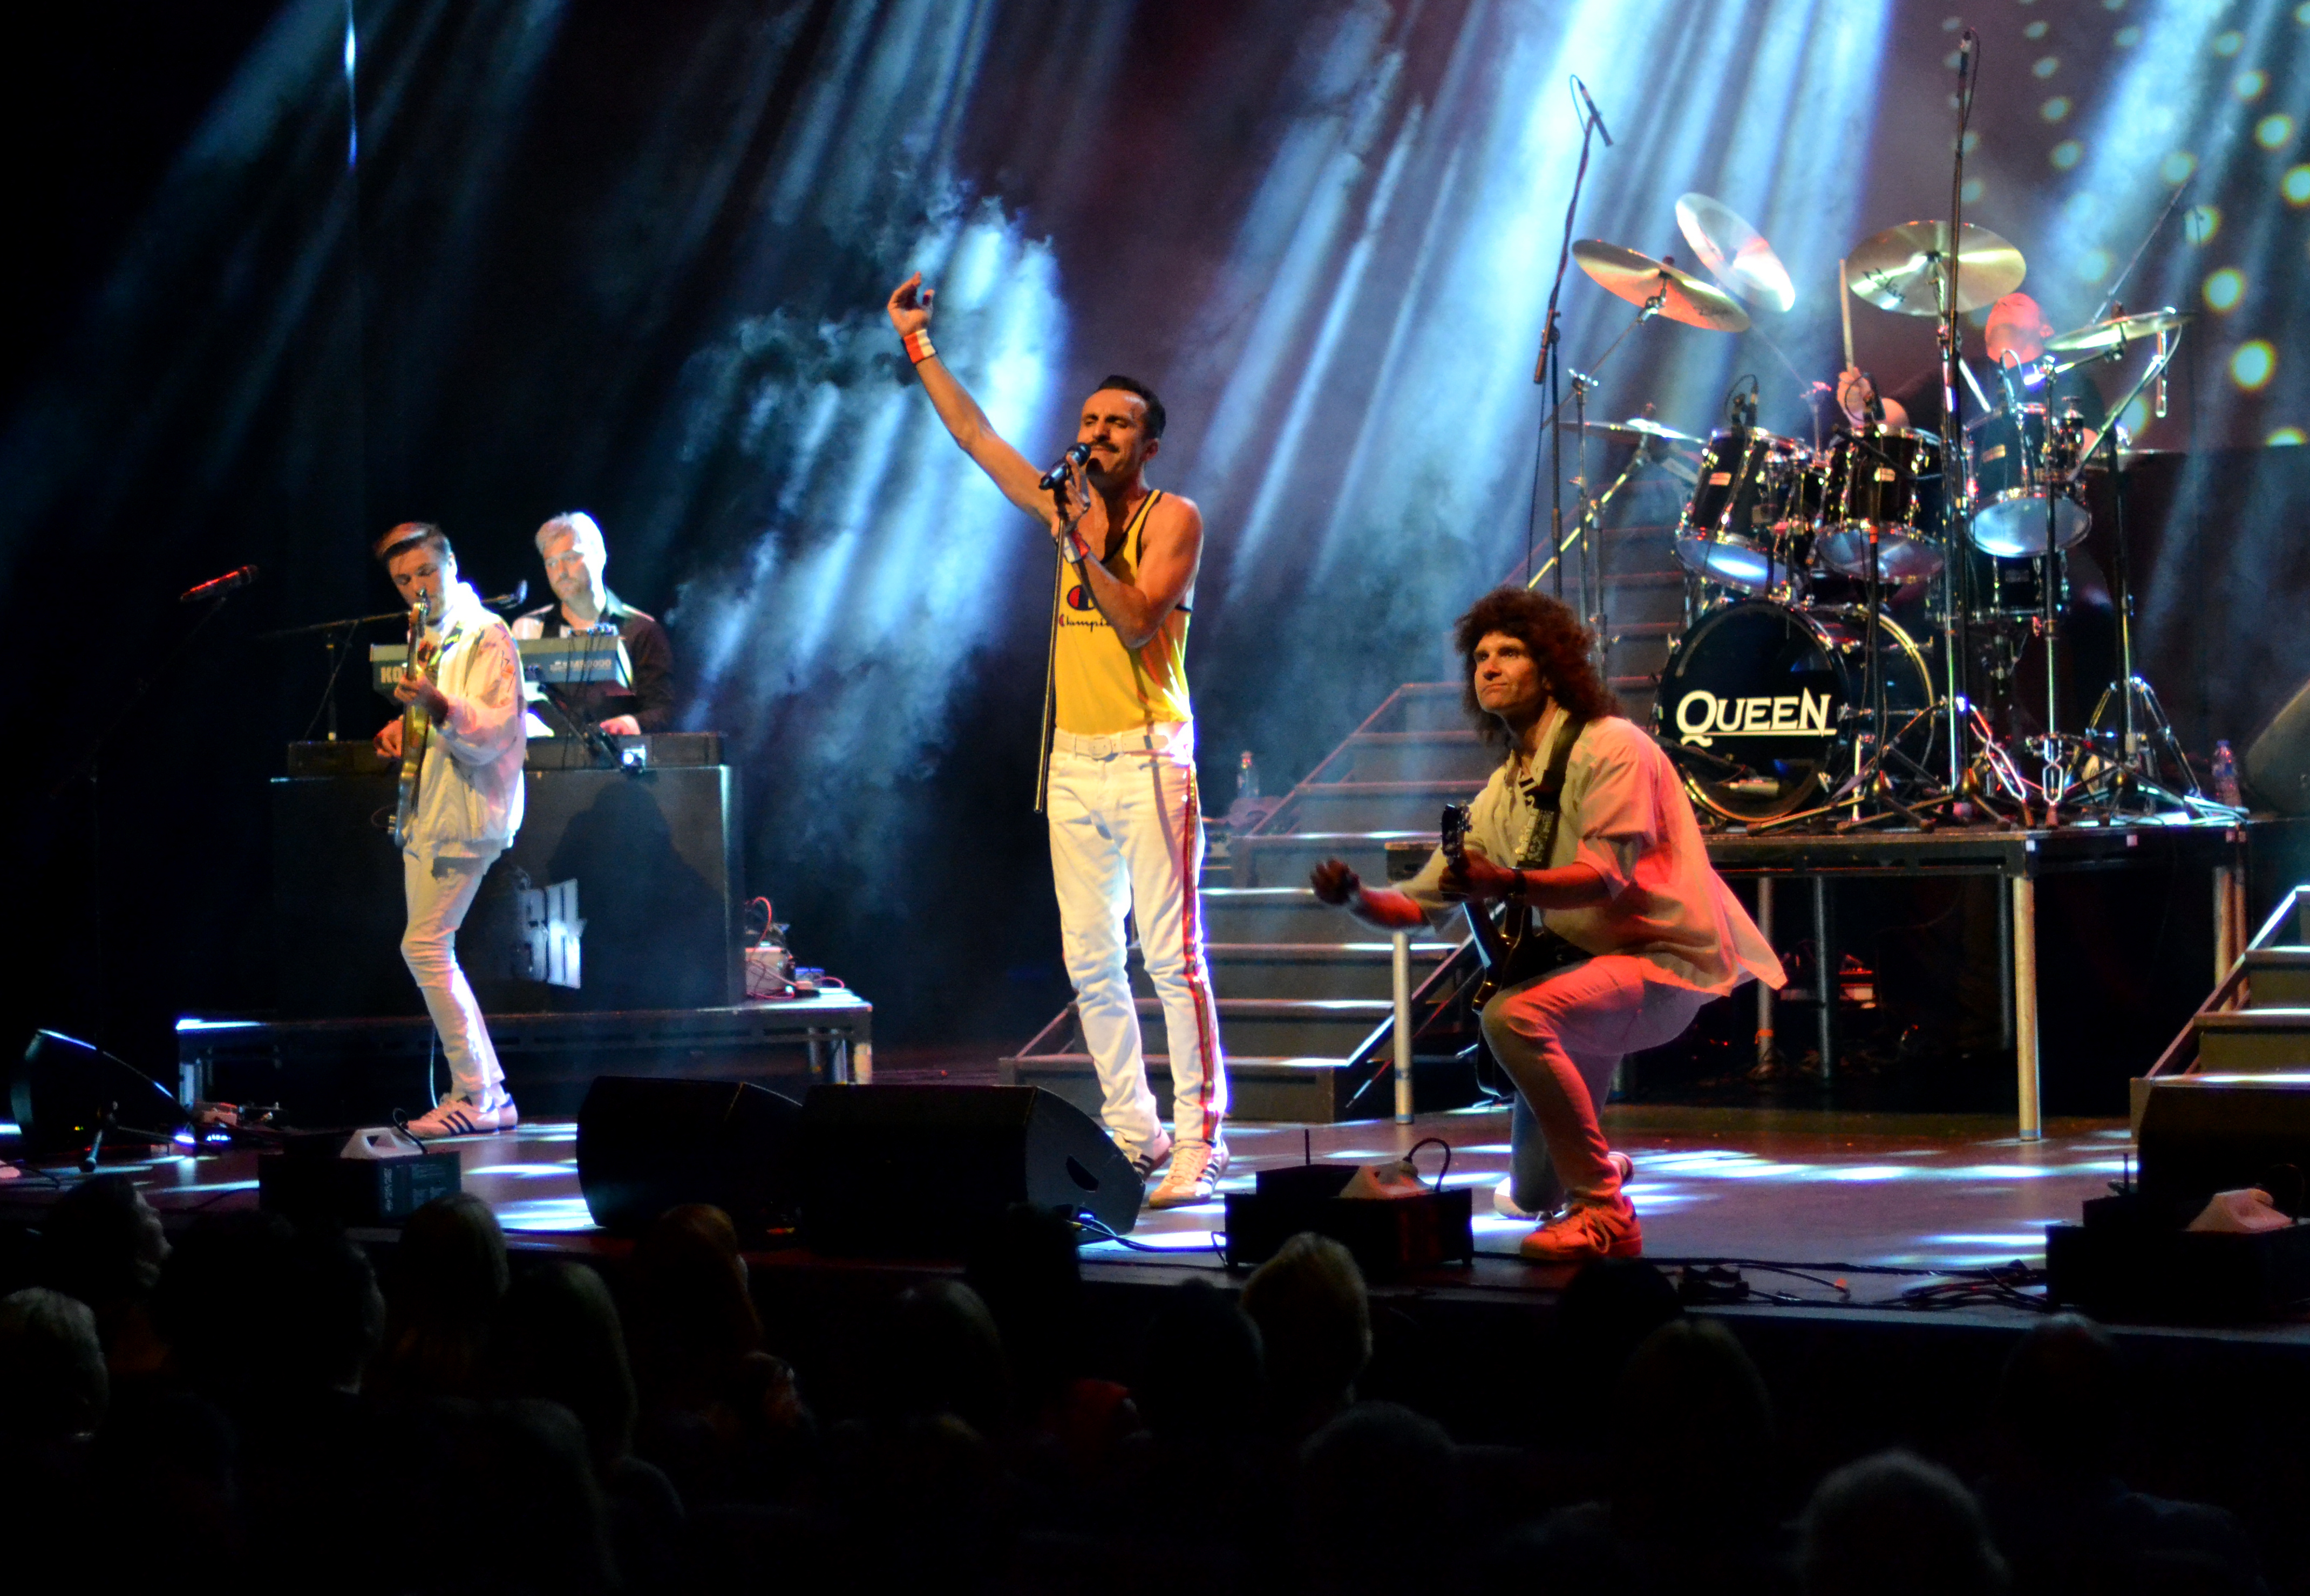 An Evening with Flash (Queen tribute) **CANCELLED**